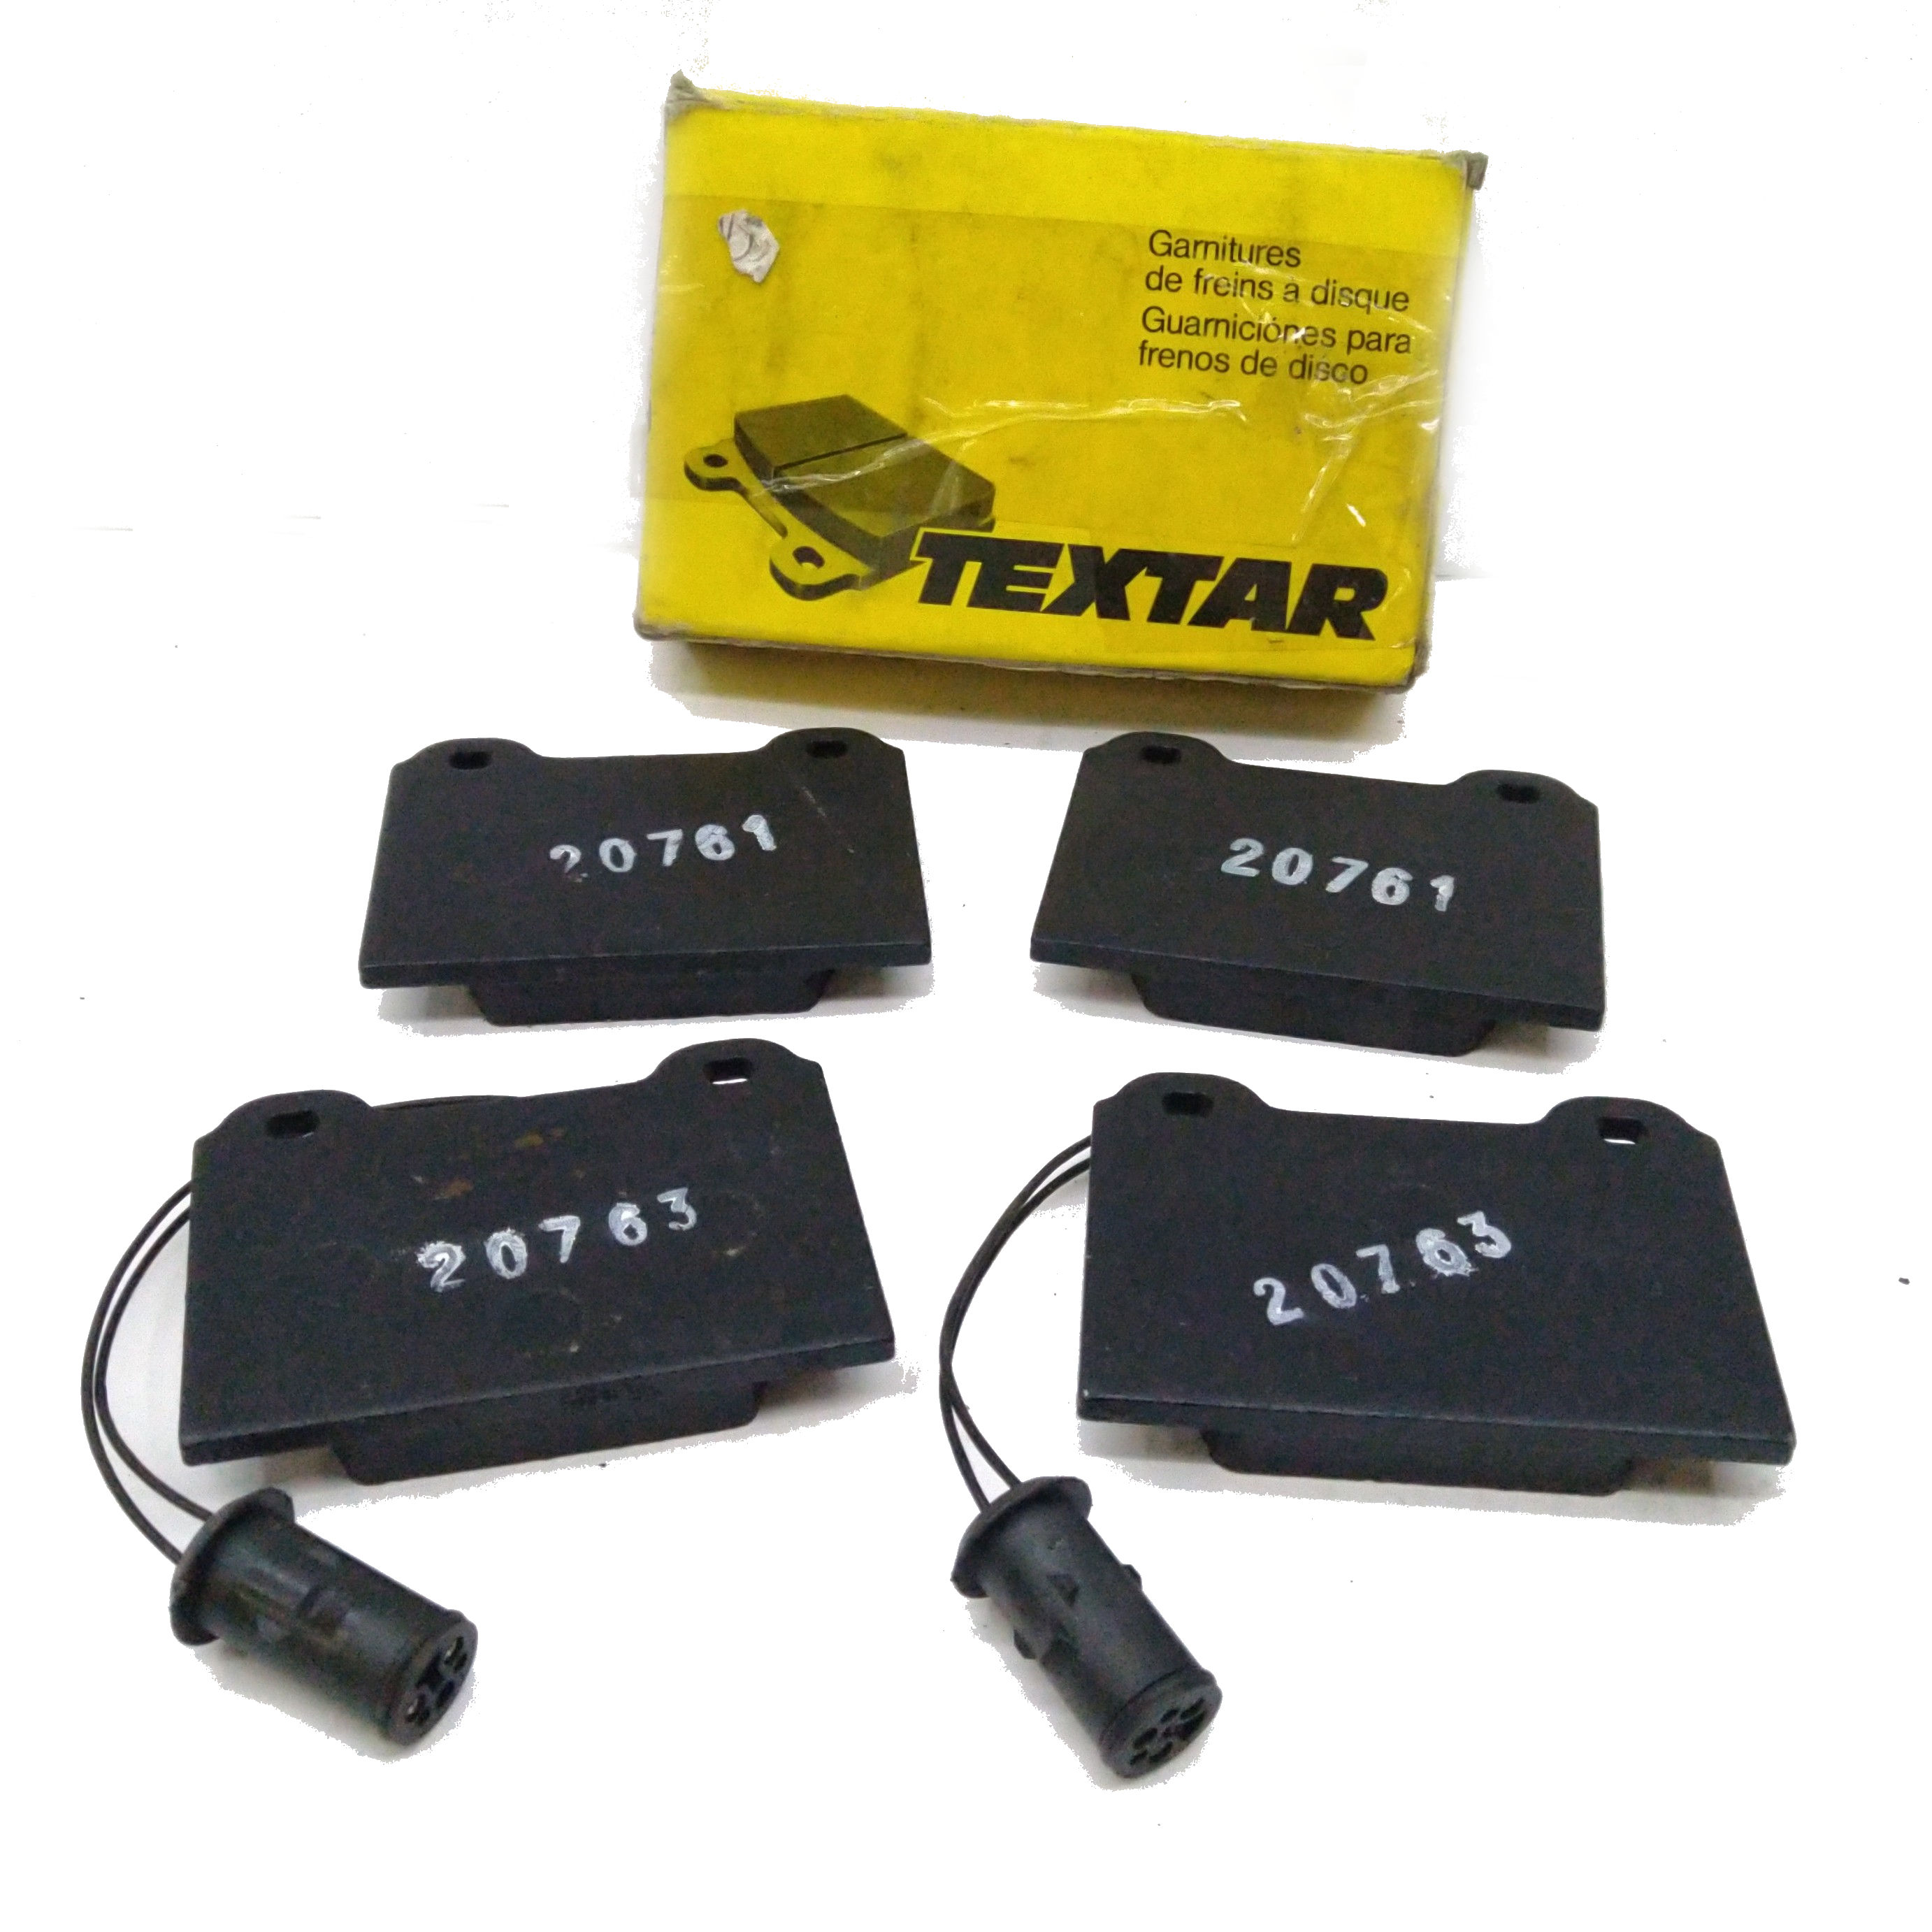 FRONT BRAKE PADS KIT AUSTIN METRO TEXTAR FOR GBP259